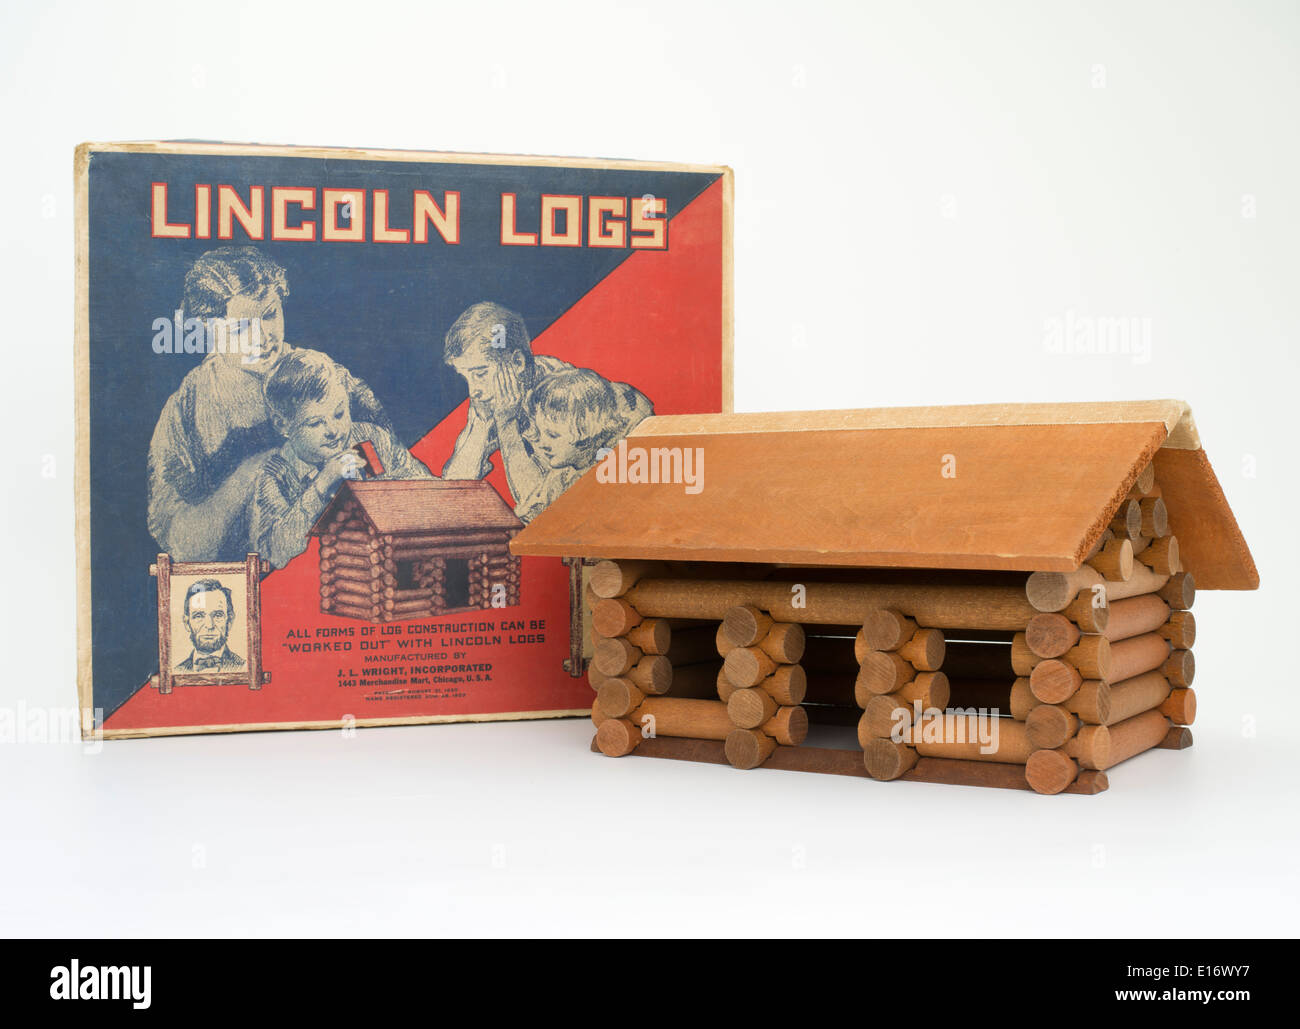 Lincoln Logs children's toy invented by John Lloyd Wright a National Toy Hall of Fame member - Stock Image